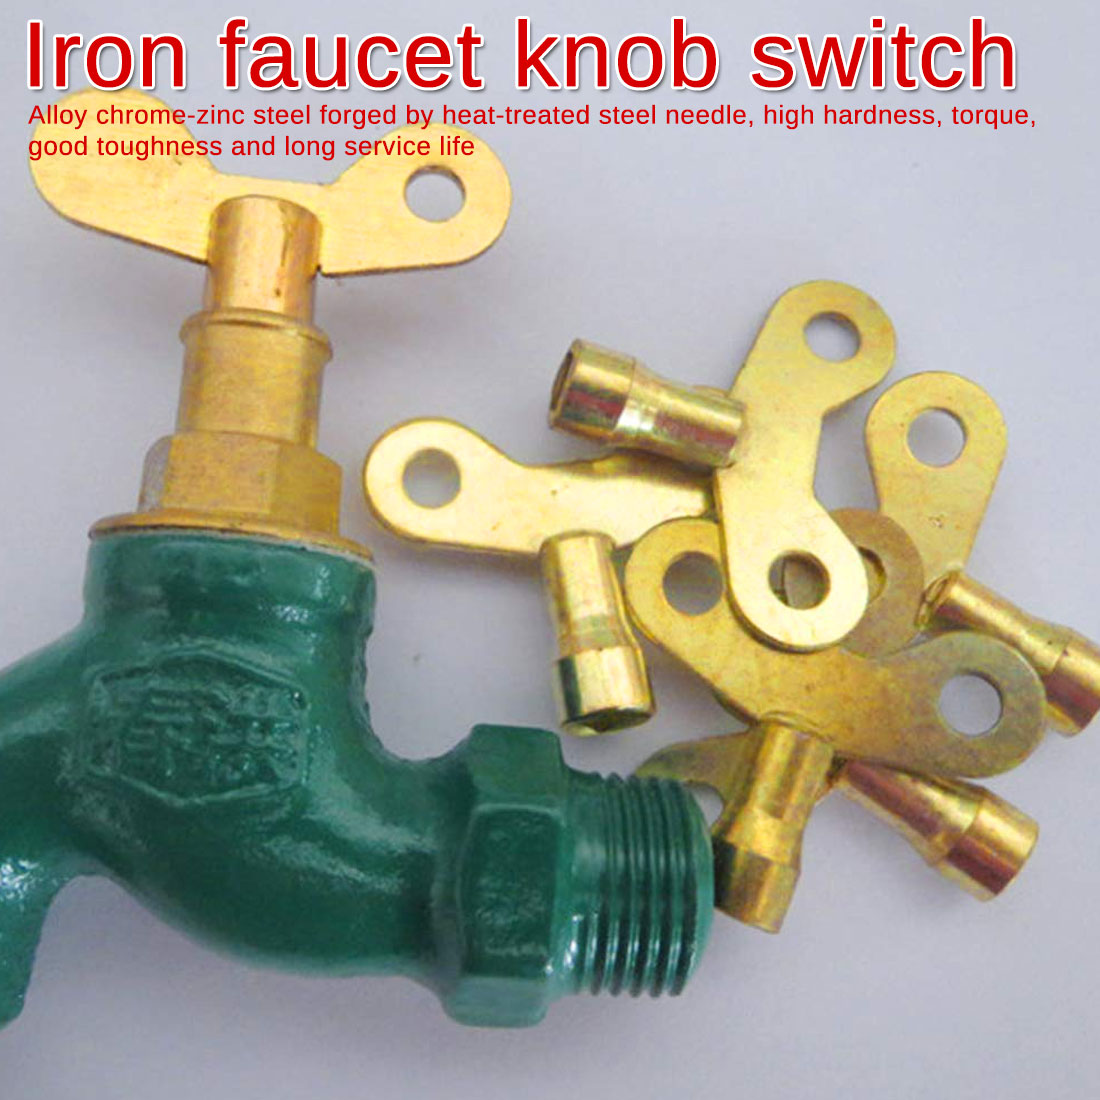 2PCS Key Bleed Hole Plumbing Faucet Special Lock Square Socket Brass Radiator Hardware Accessories Non-rust Tap